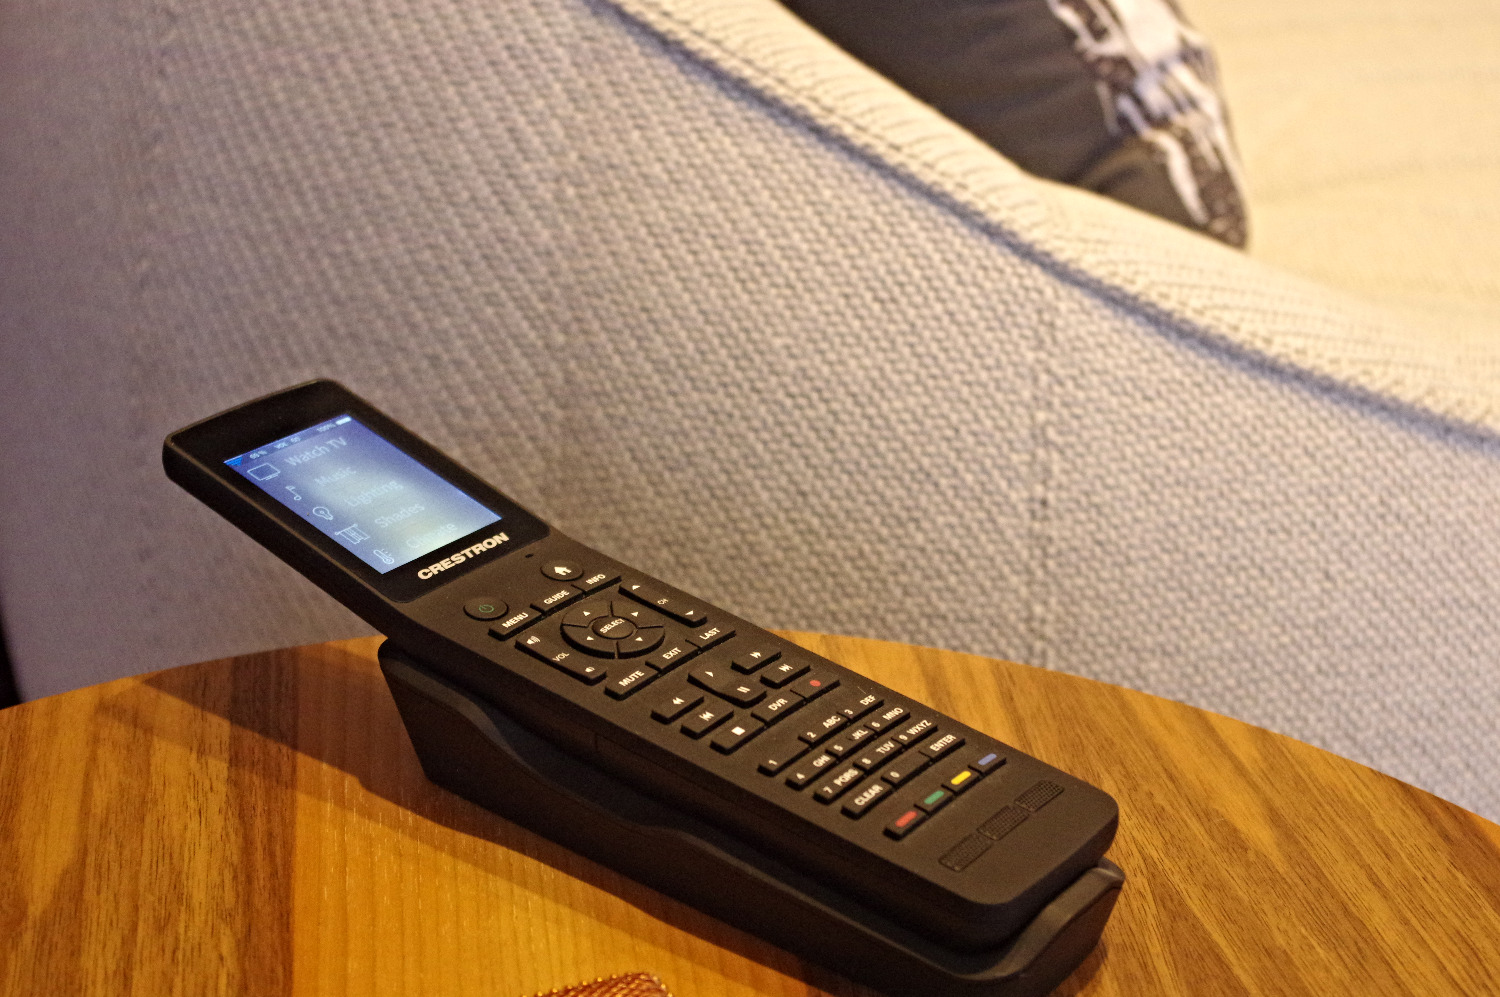 Crestron remote resting on end table